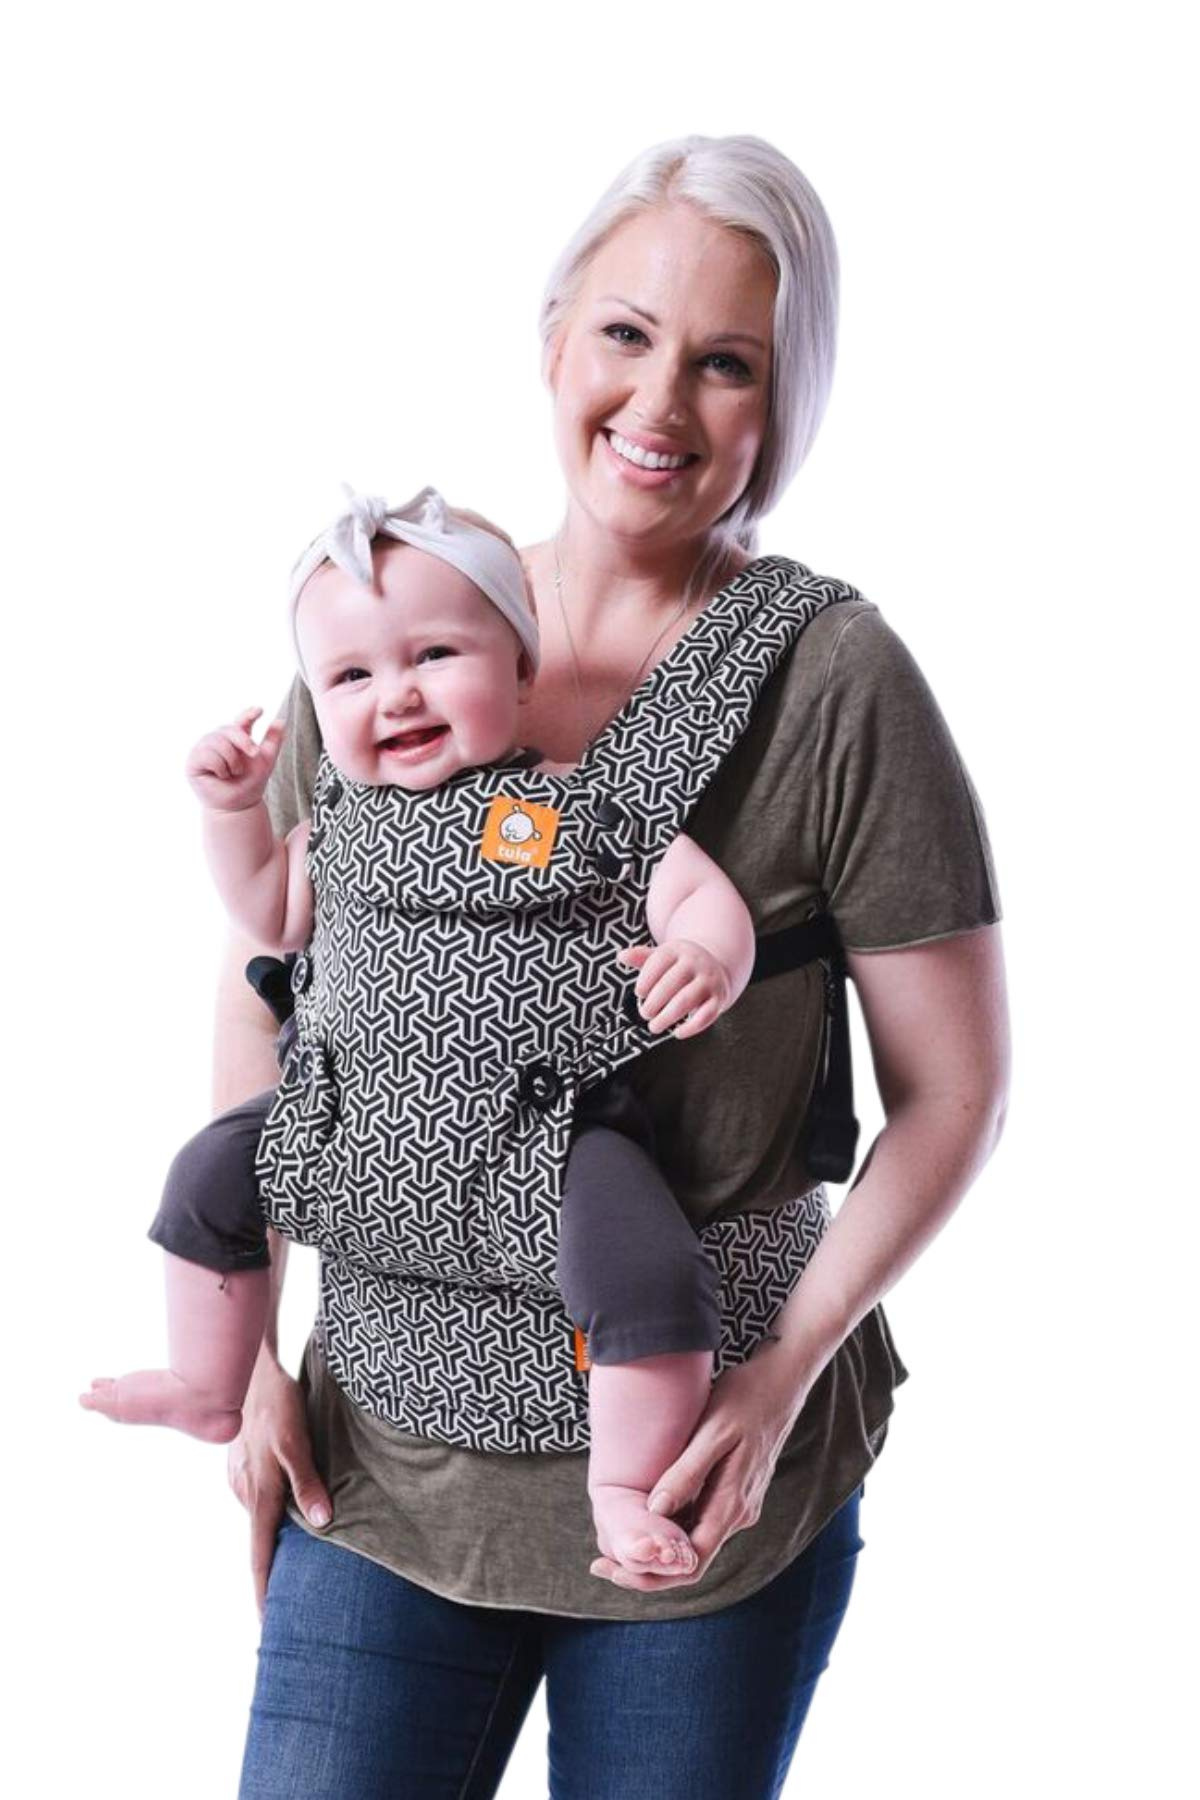 Baby Tula Explore Baby Carrier 3.2 - 20.4 kg, Adjustable Newborn to Toddler Carrier, Multiple Ergonomic Positions, Front and Back Carry, Easy-to-Use, Lightweight - Forever, Black/White Geometric Print Tula EVERY CARRY POSITION YOUR BABY WILL NEED, INCLUDING OUTWARD FACING: Multiple positions to carry baby including front facing out*, facing in, and back carry. Each position provides a natural, ergonomic position best for comfortable carrying that promotes healthy hip and spine development for baby. INNOVATIVE BODY PANEL WITH AN EASY-TO-ADJUST DESIGN: Adjusts in three width settings to find a perfect fit as baby grows from newborn to early toddlerhood. PADDED, ADJUSTABLE NECK SUPPORT PILLOW: Can be used in multiple positions to provide head and neck support for newborns and sleeping babies. 1